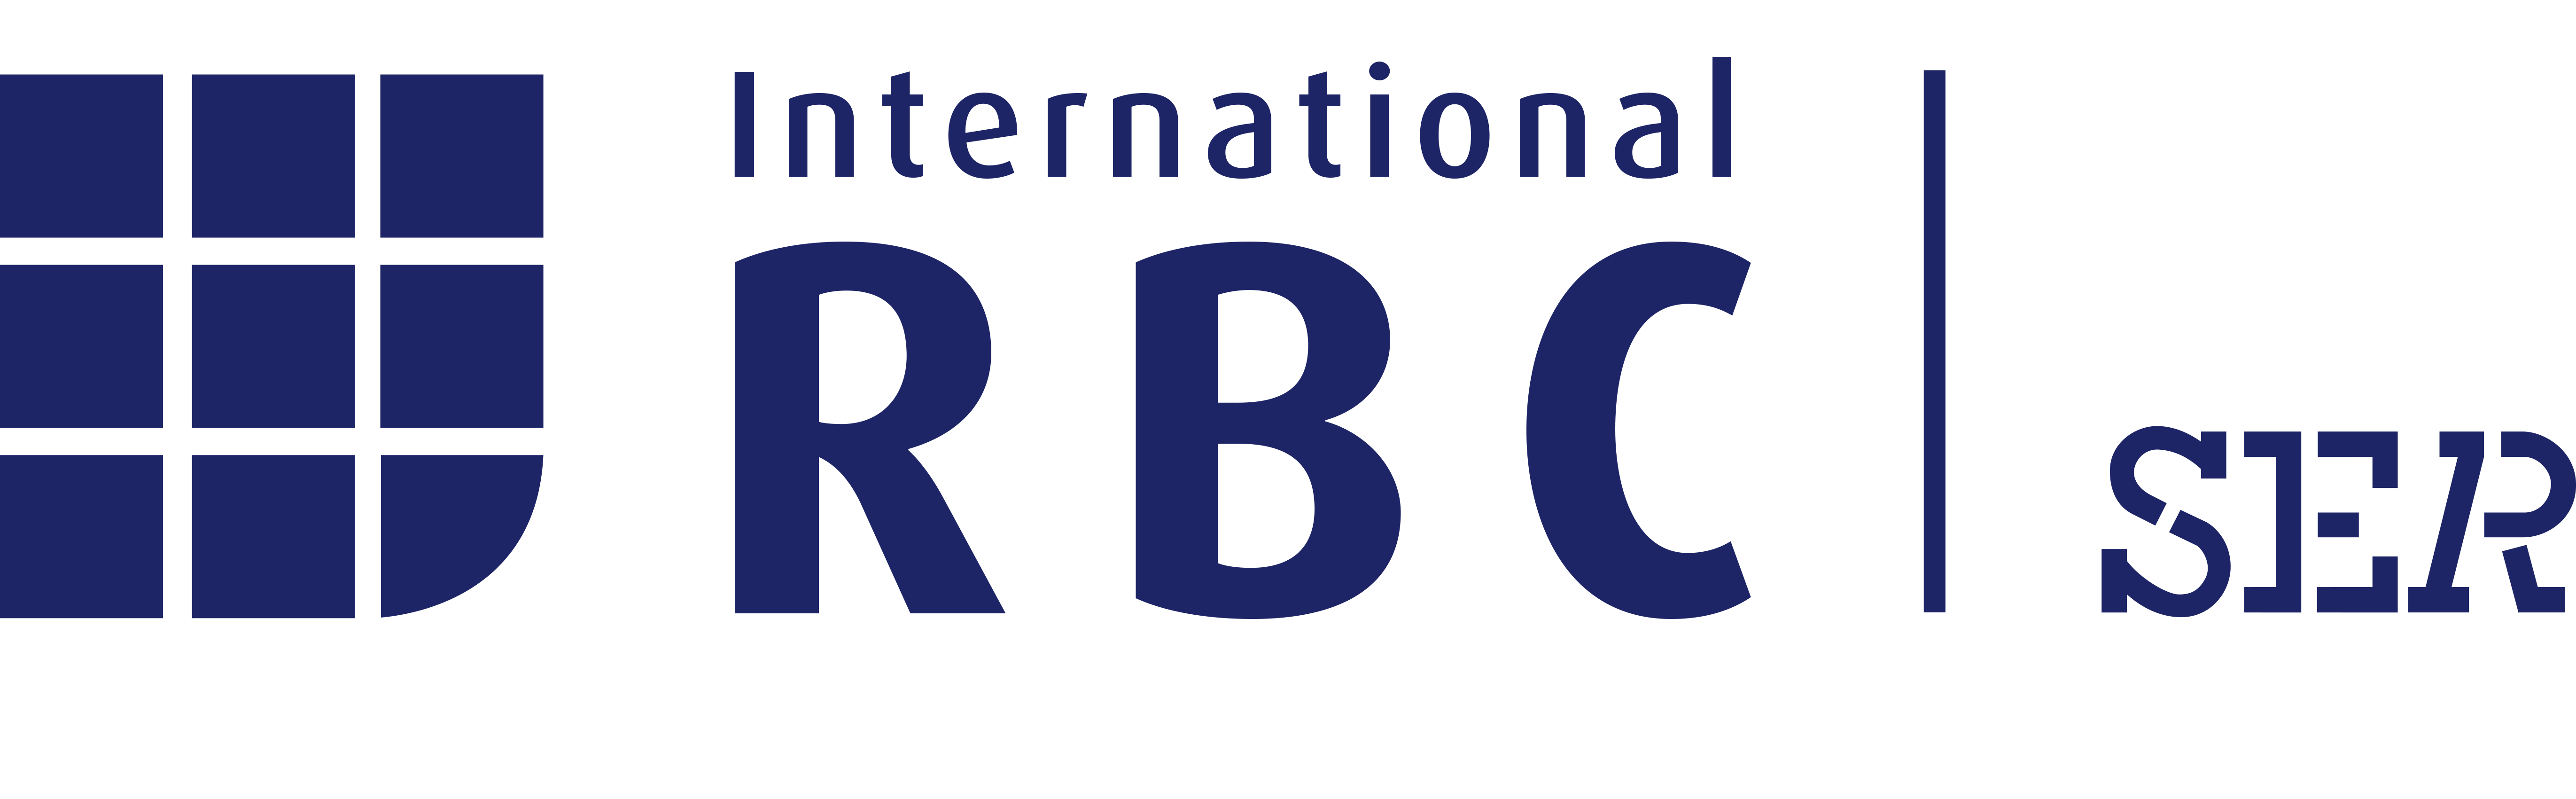 International RBC | SER